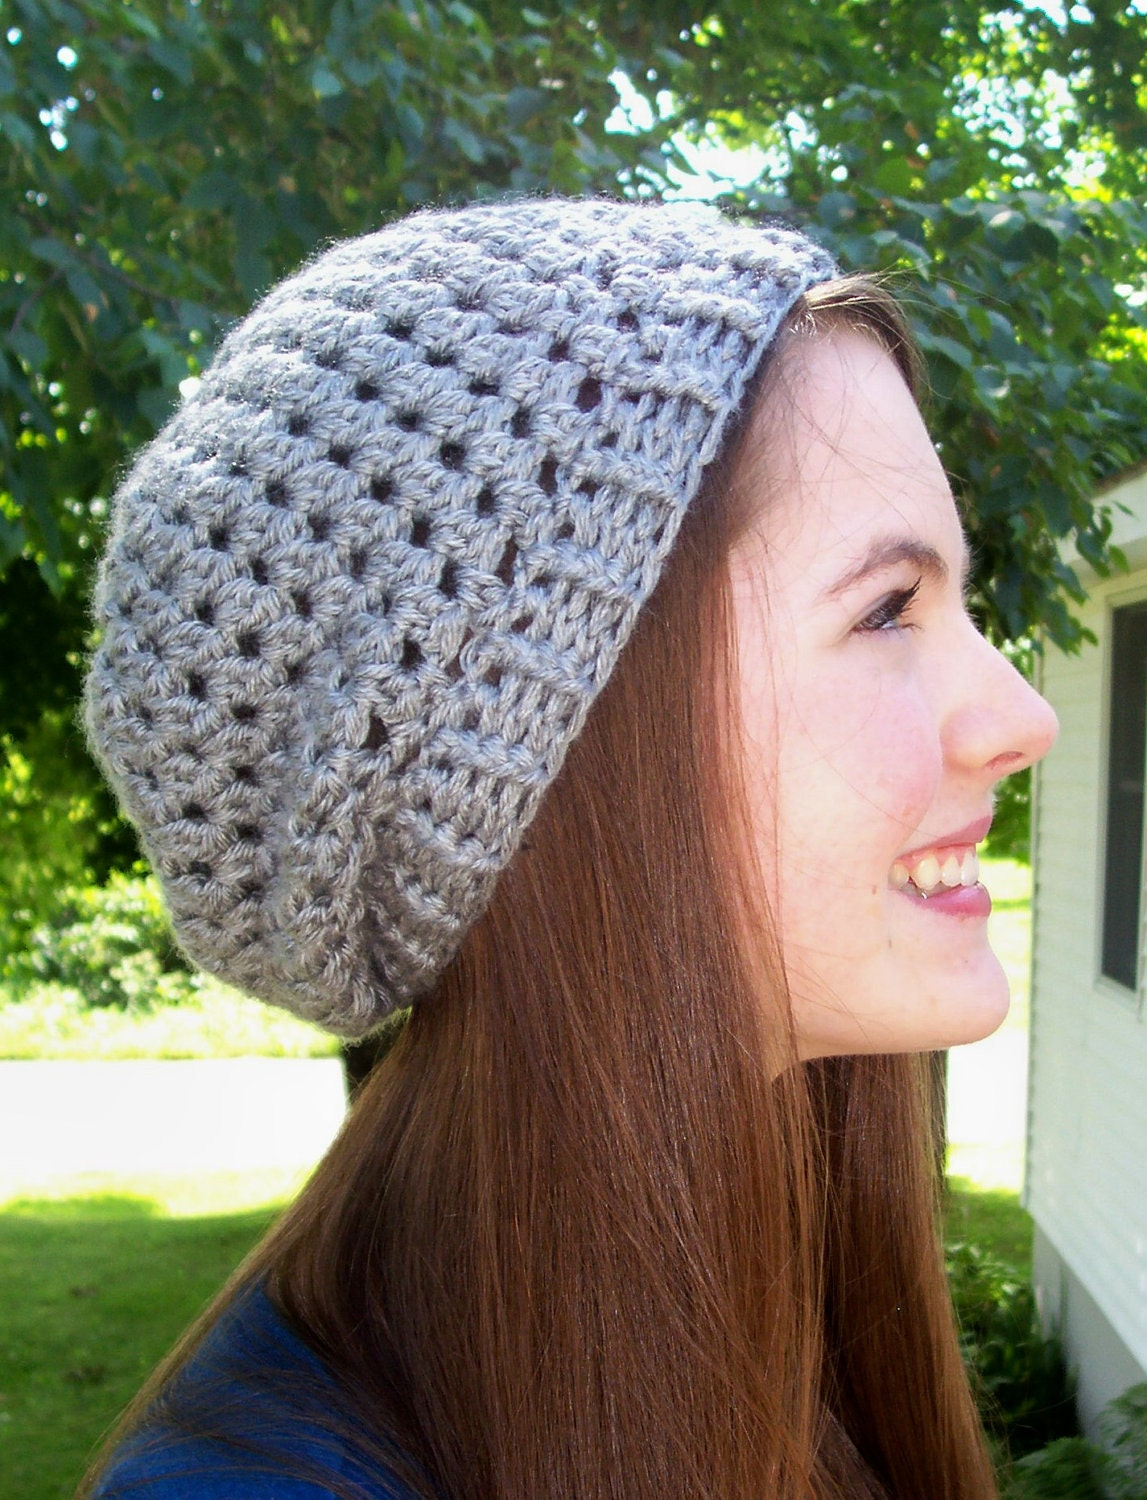 Crochet Stitches For Beanies : Slight Slouch Hat PDF Crochet Pattern Adult by RusticThreads